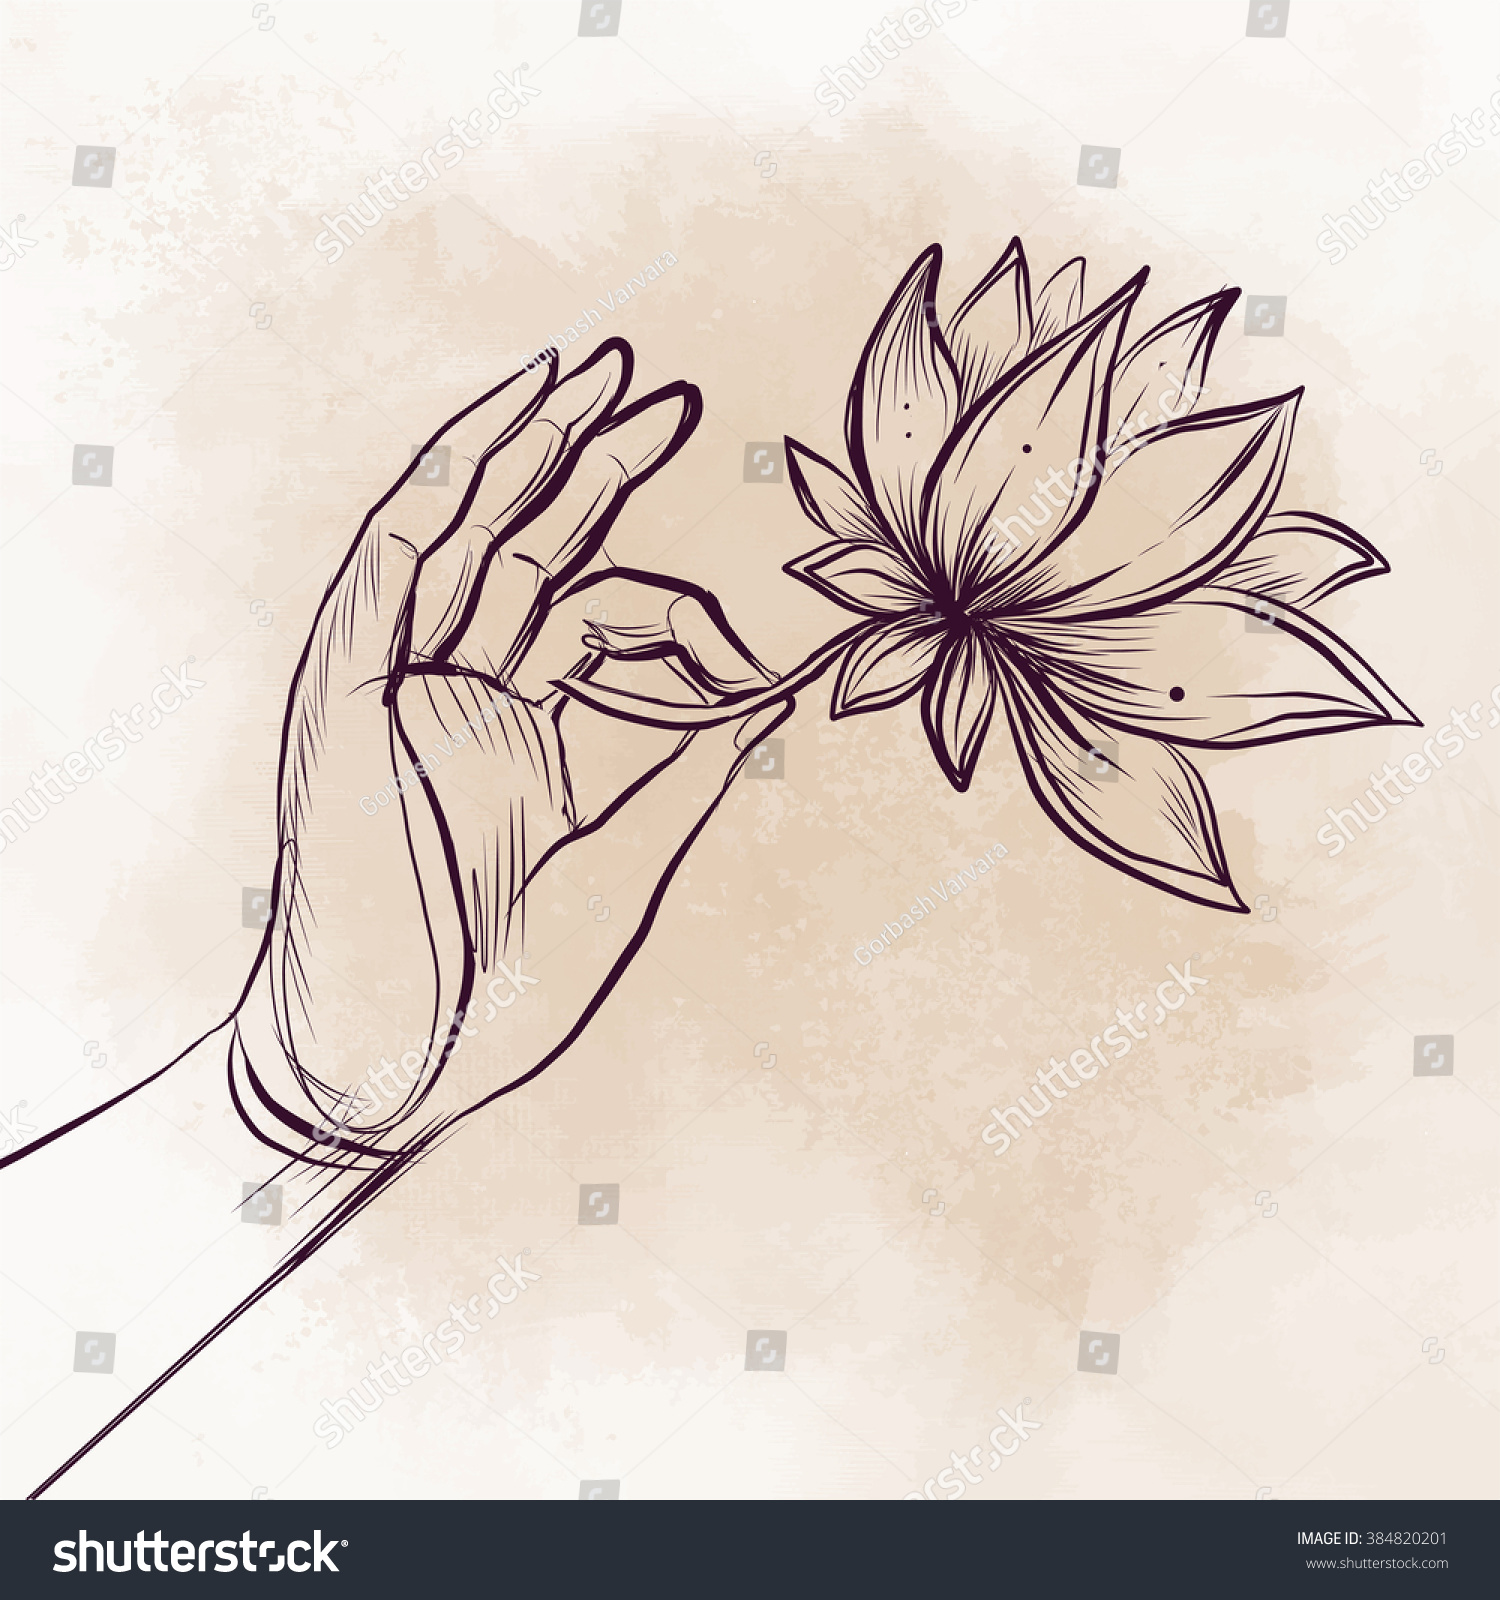 Lord buddhas hand holding lotus flower stock vector for Hand holding a rose drawing